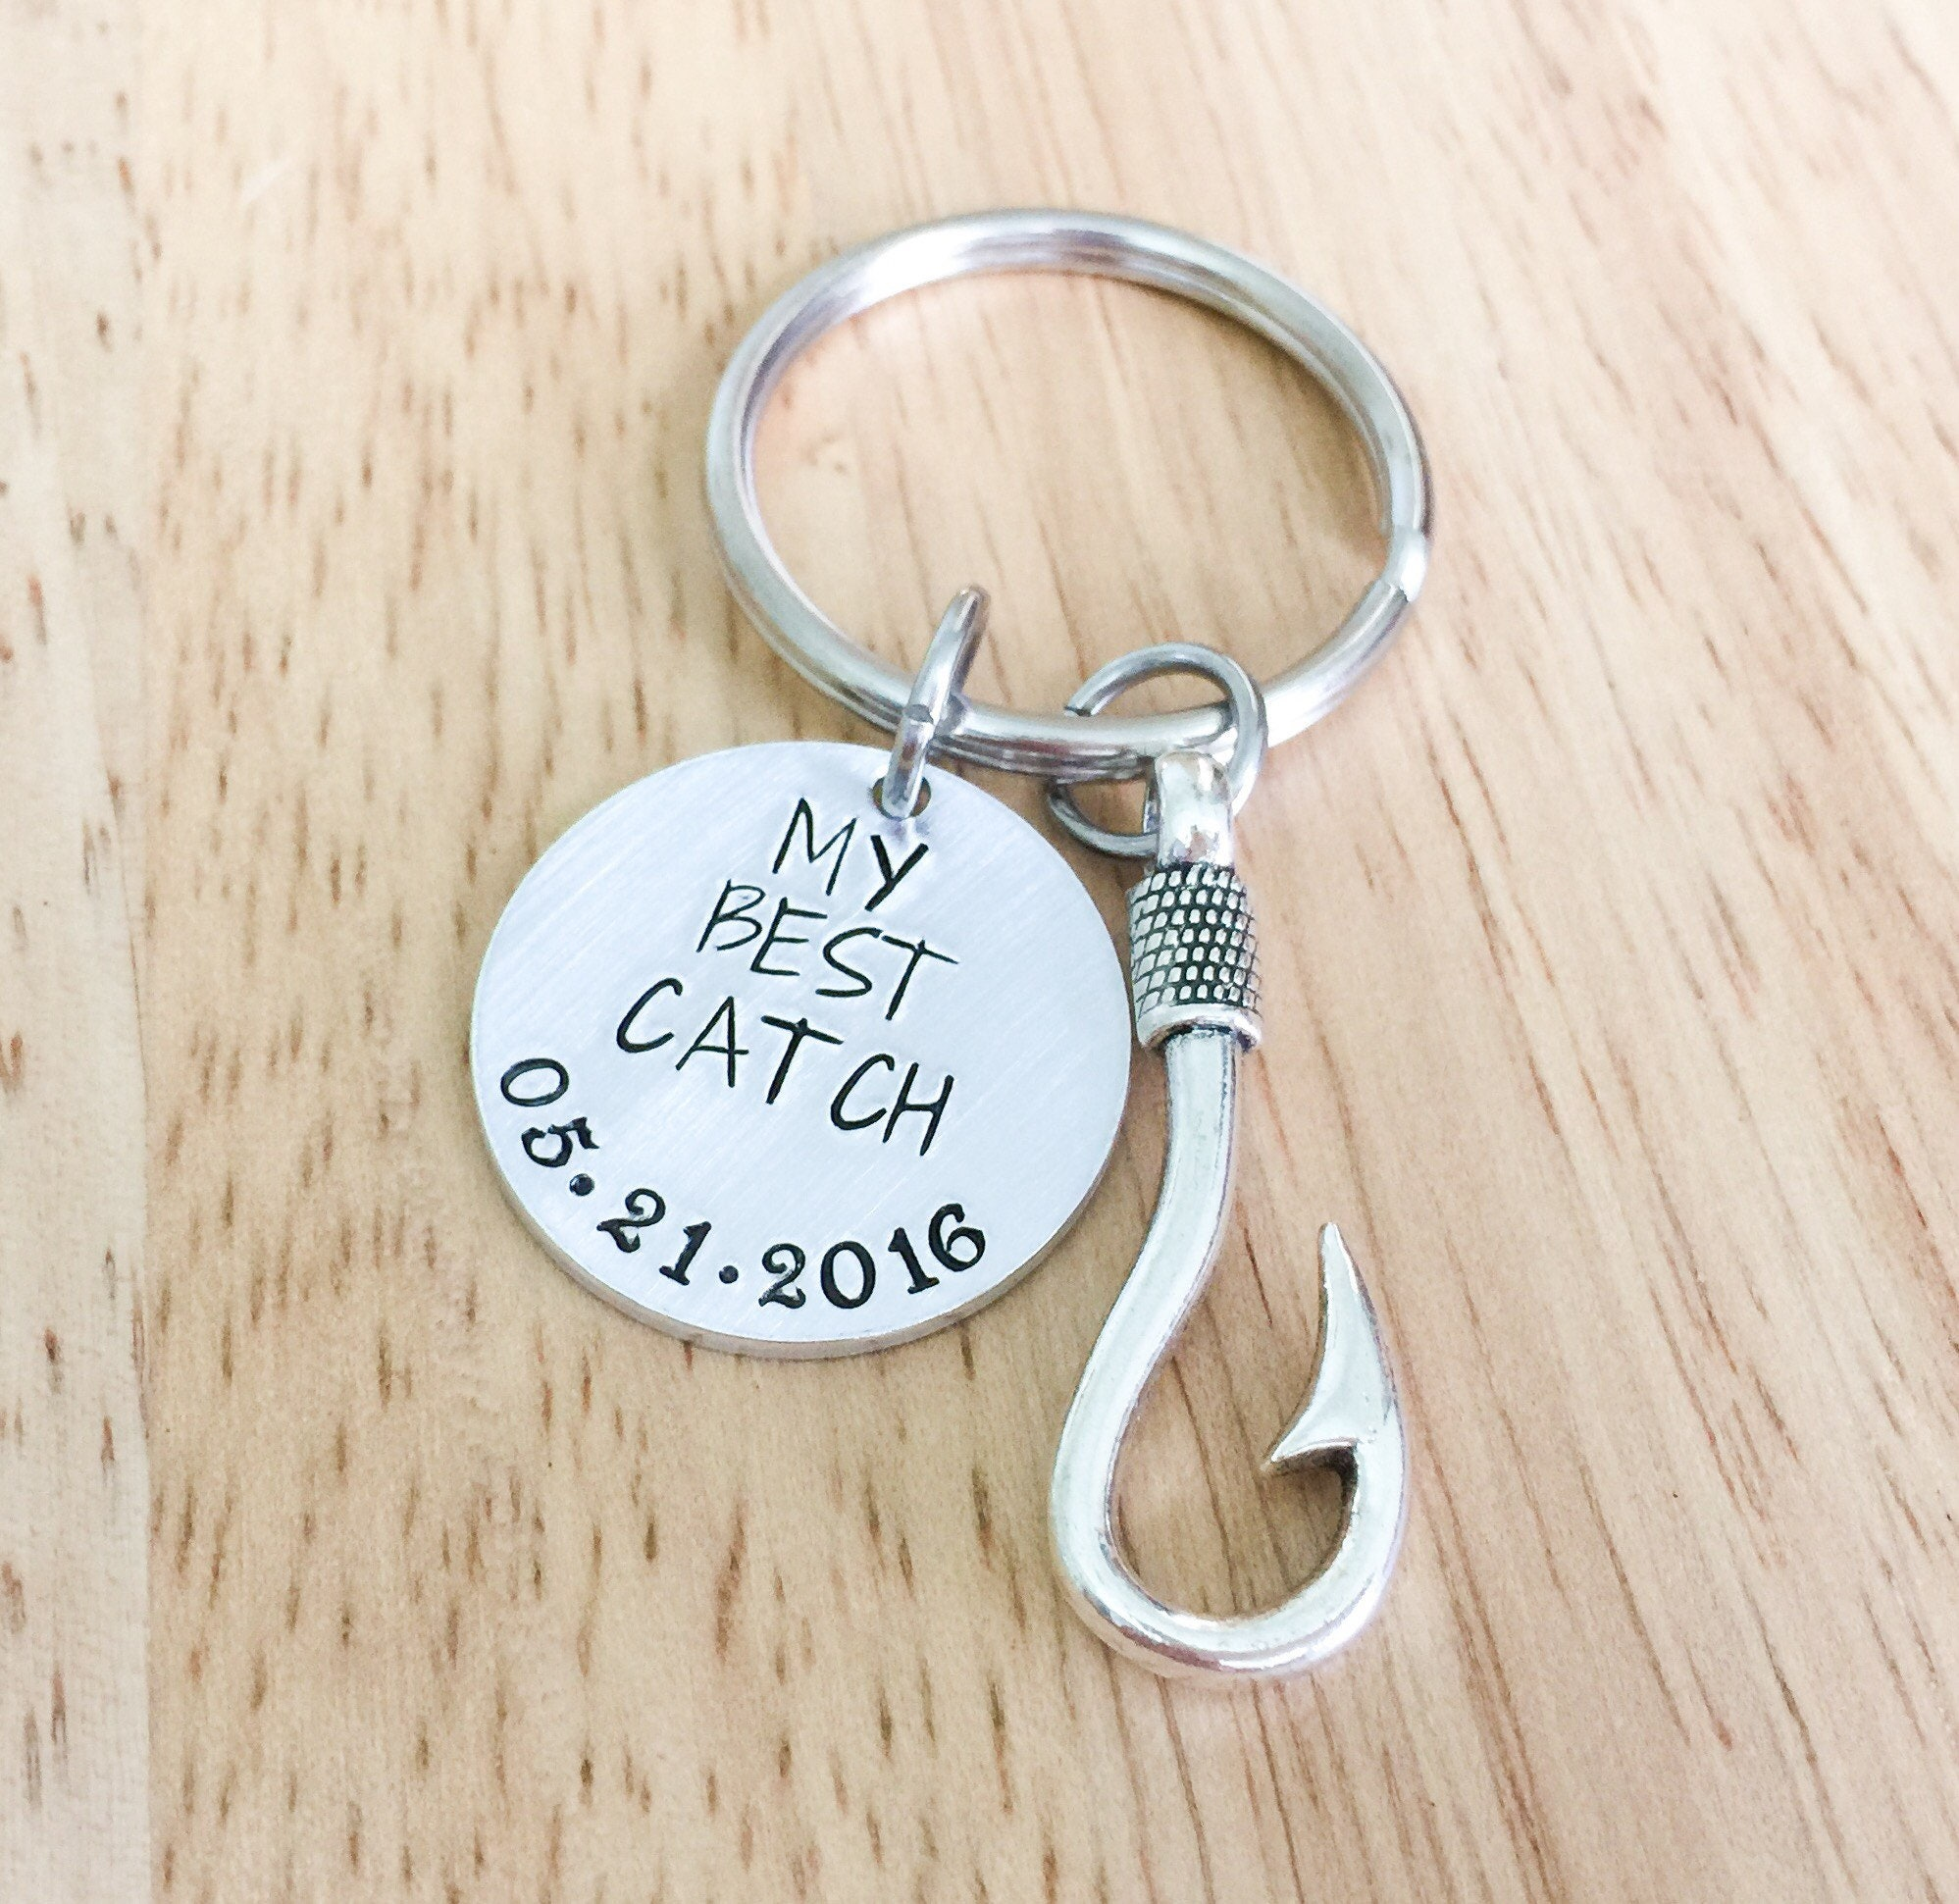 Fishing Hook You Are My Greatest Catch Hand Stamped Keychain Couples Anniversary Present Gift